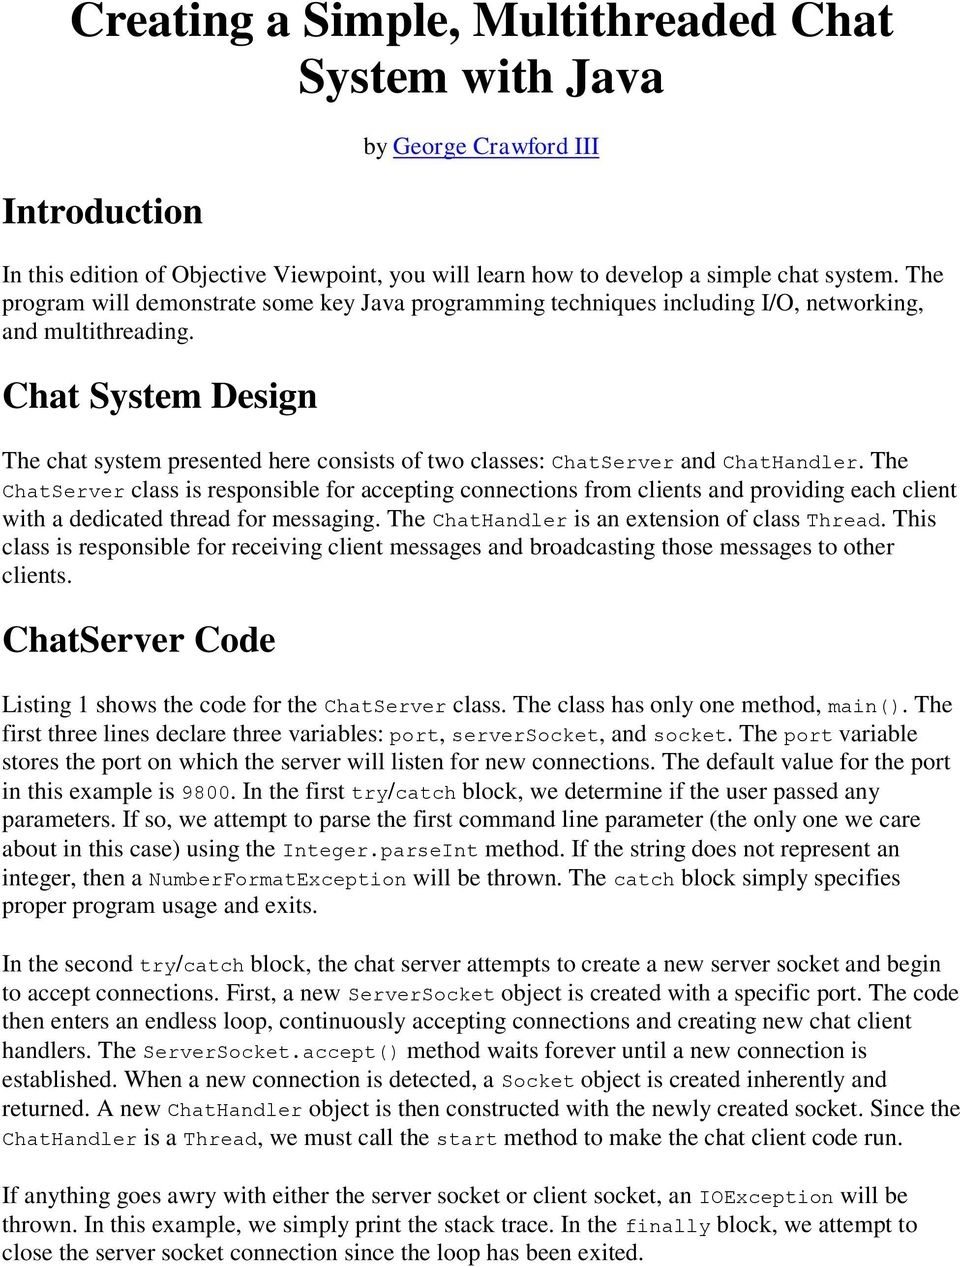 Chat System Design The chat system presented here consists of two classes: ChatServer and ChatHandler.